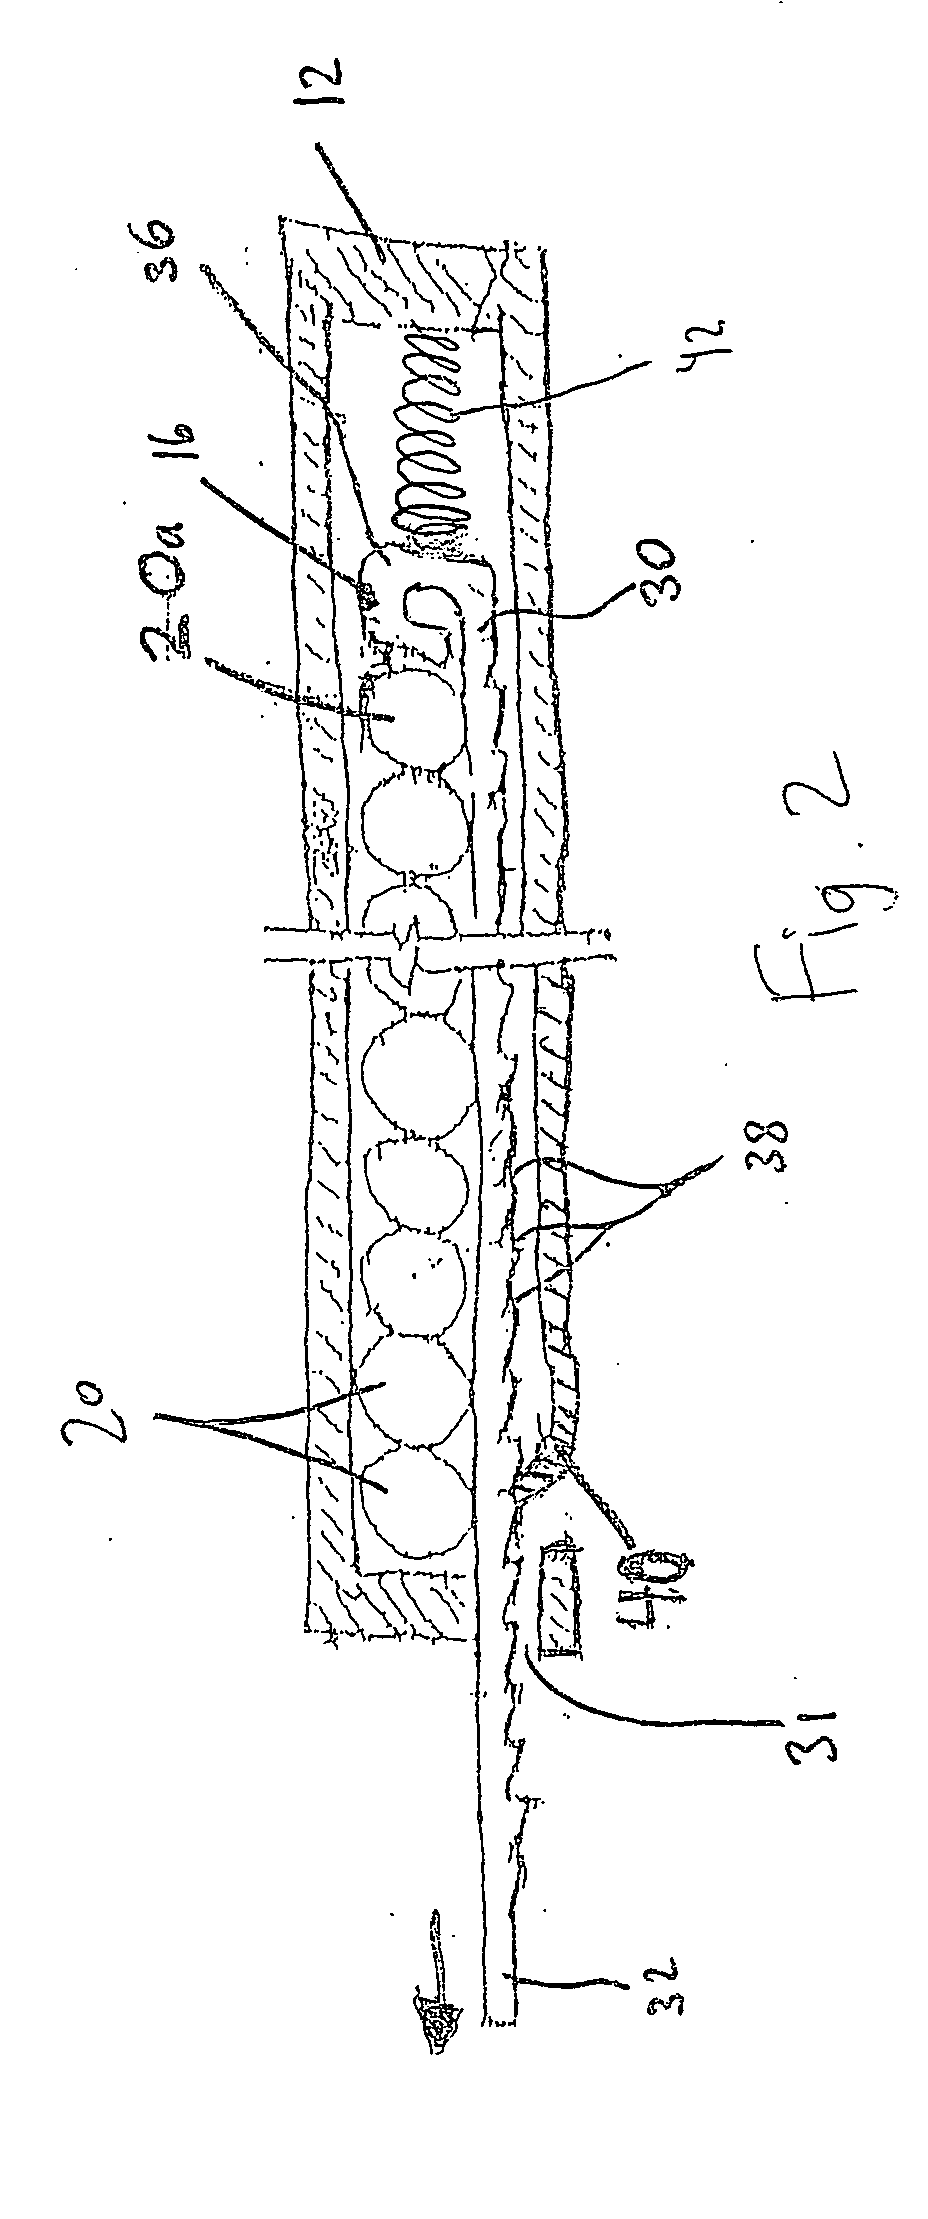 US20050267319A1 - Brachytherapy seed loader and containers